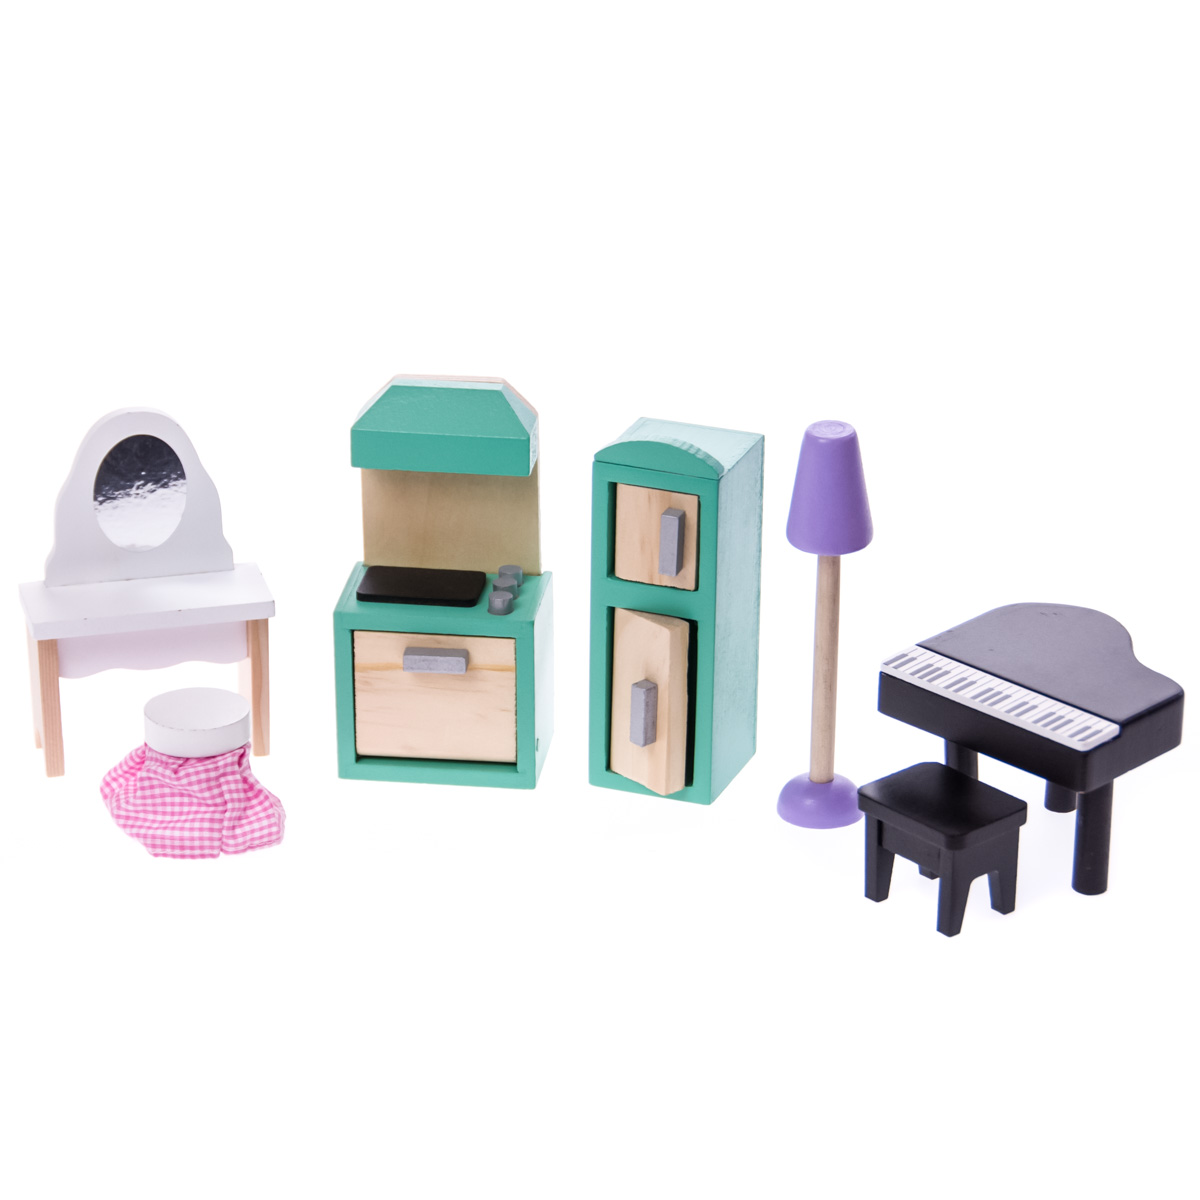 Country Road Cottage Dollhouse Furniture Set 0